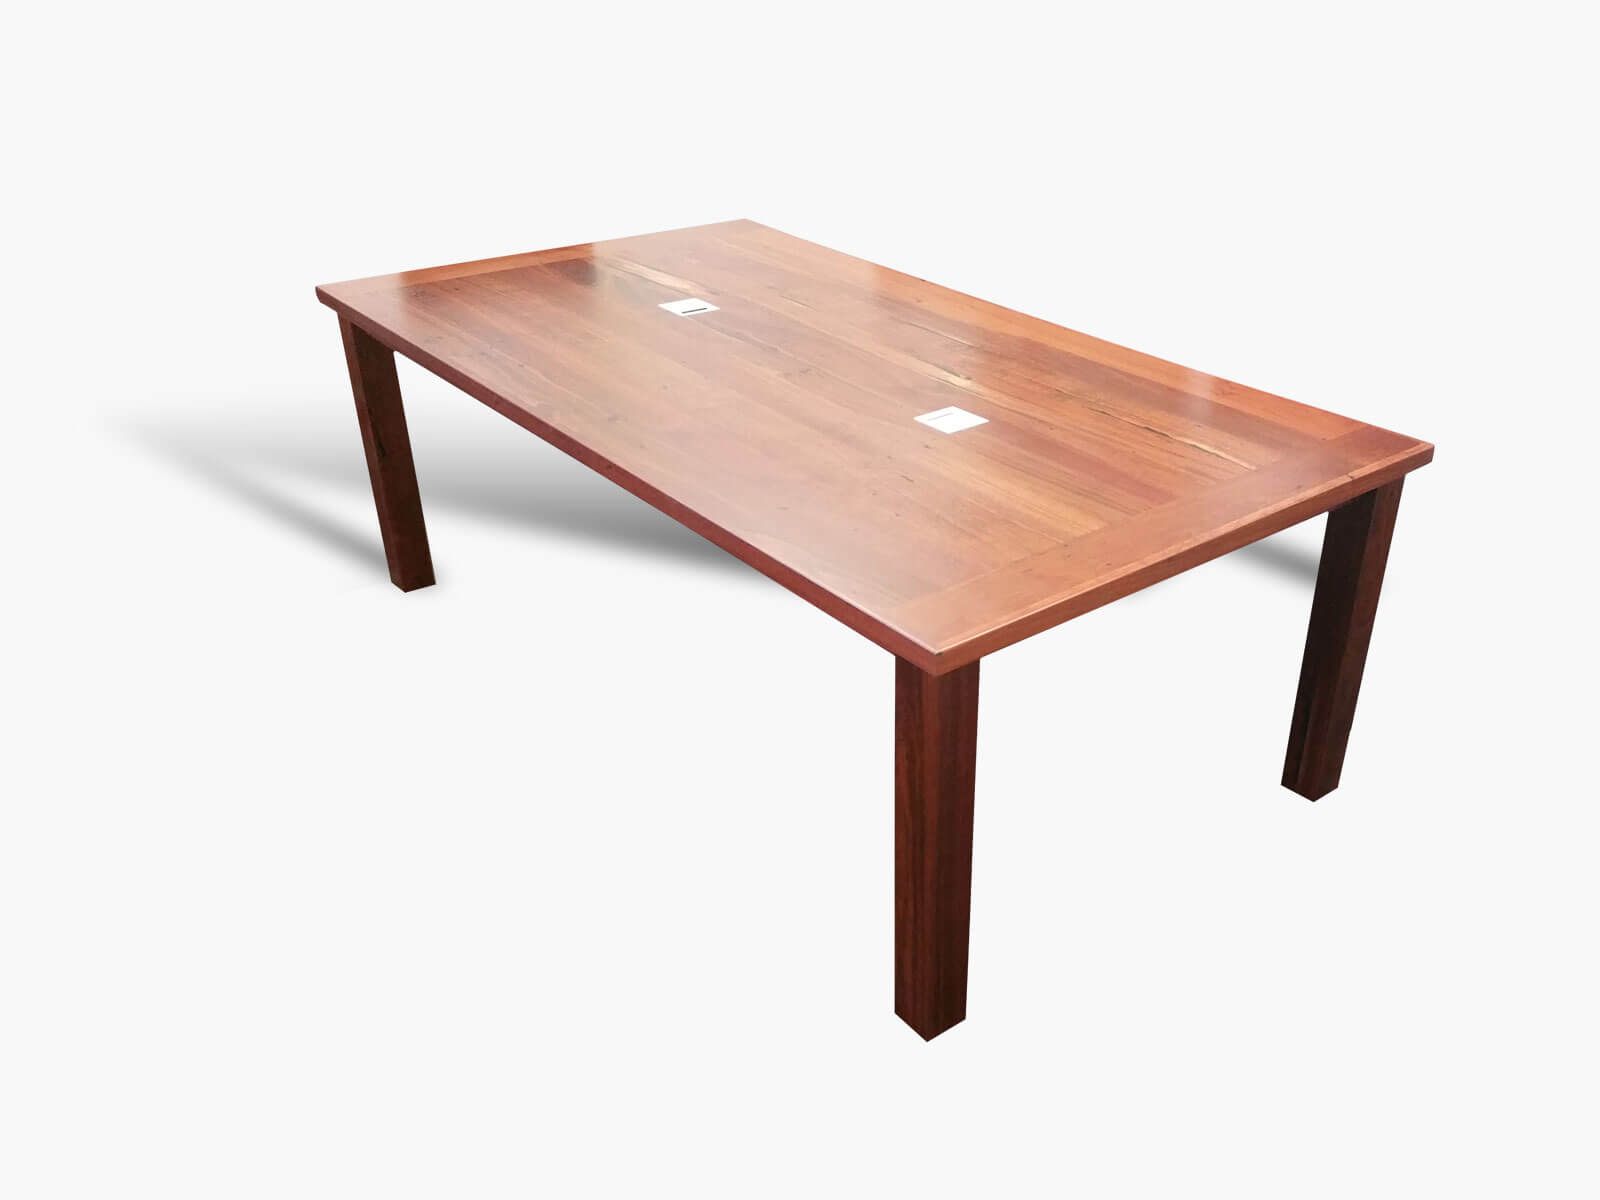 Subiaco Boardroom Table